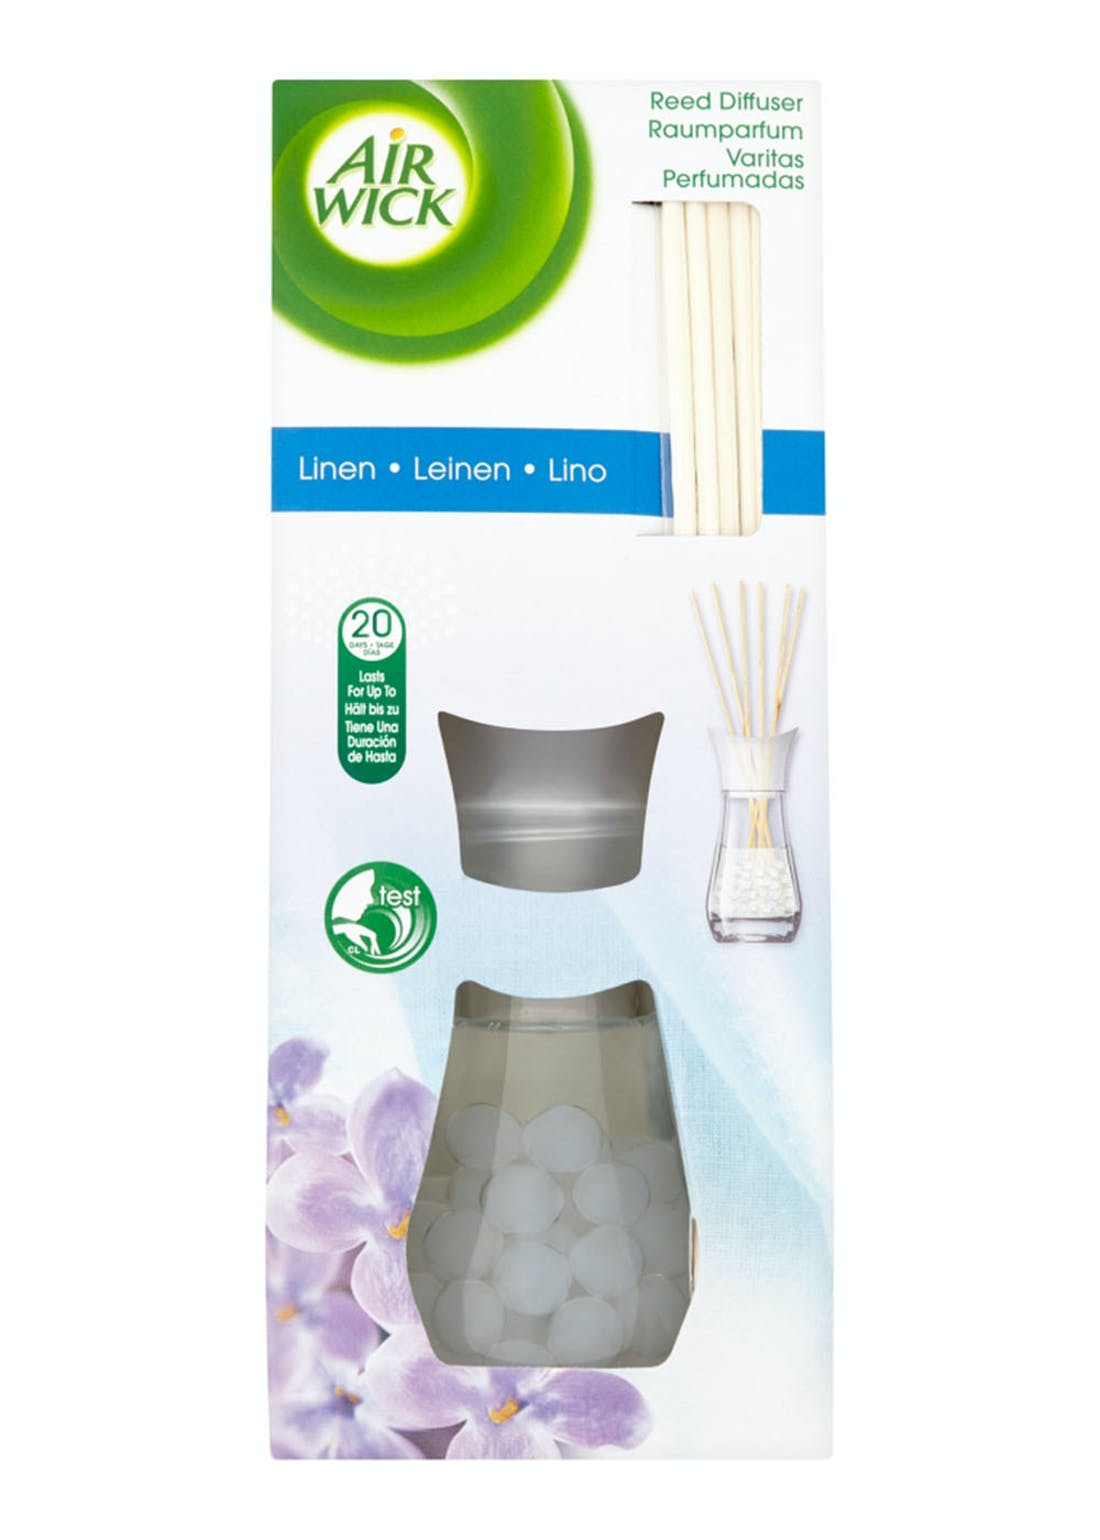 Air Wick Linen Reed Diffuser